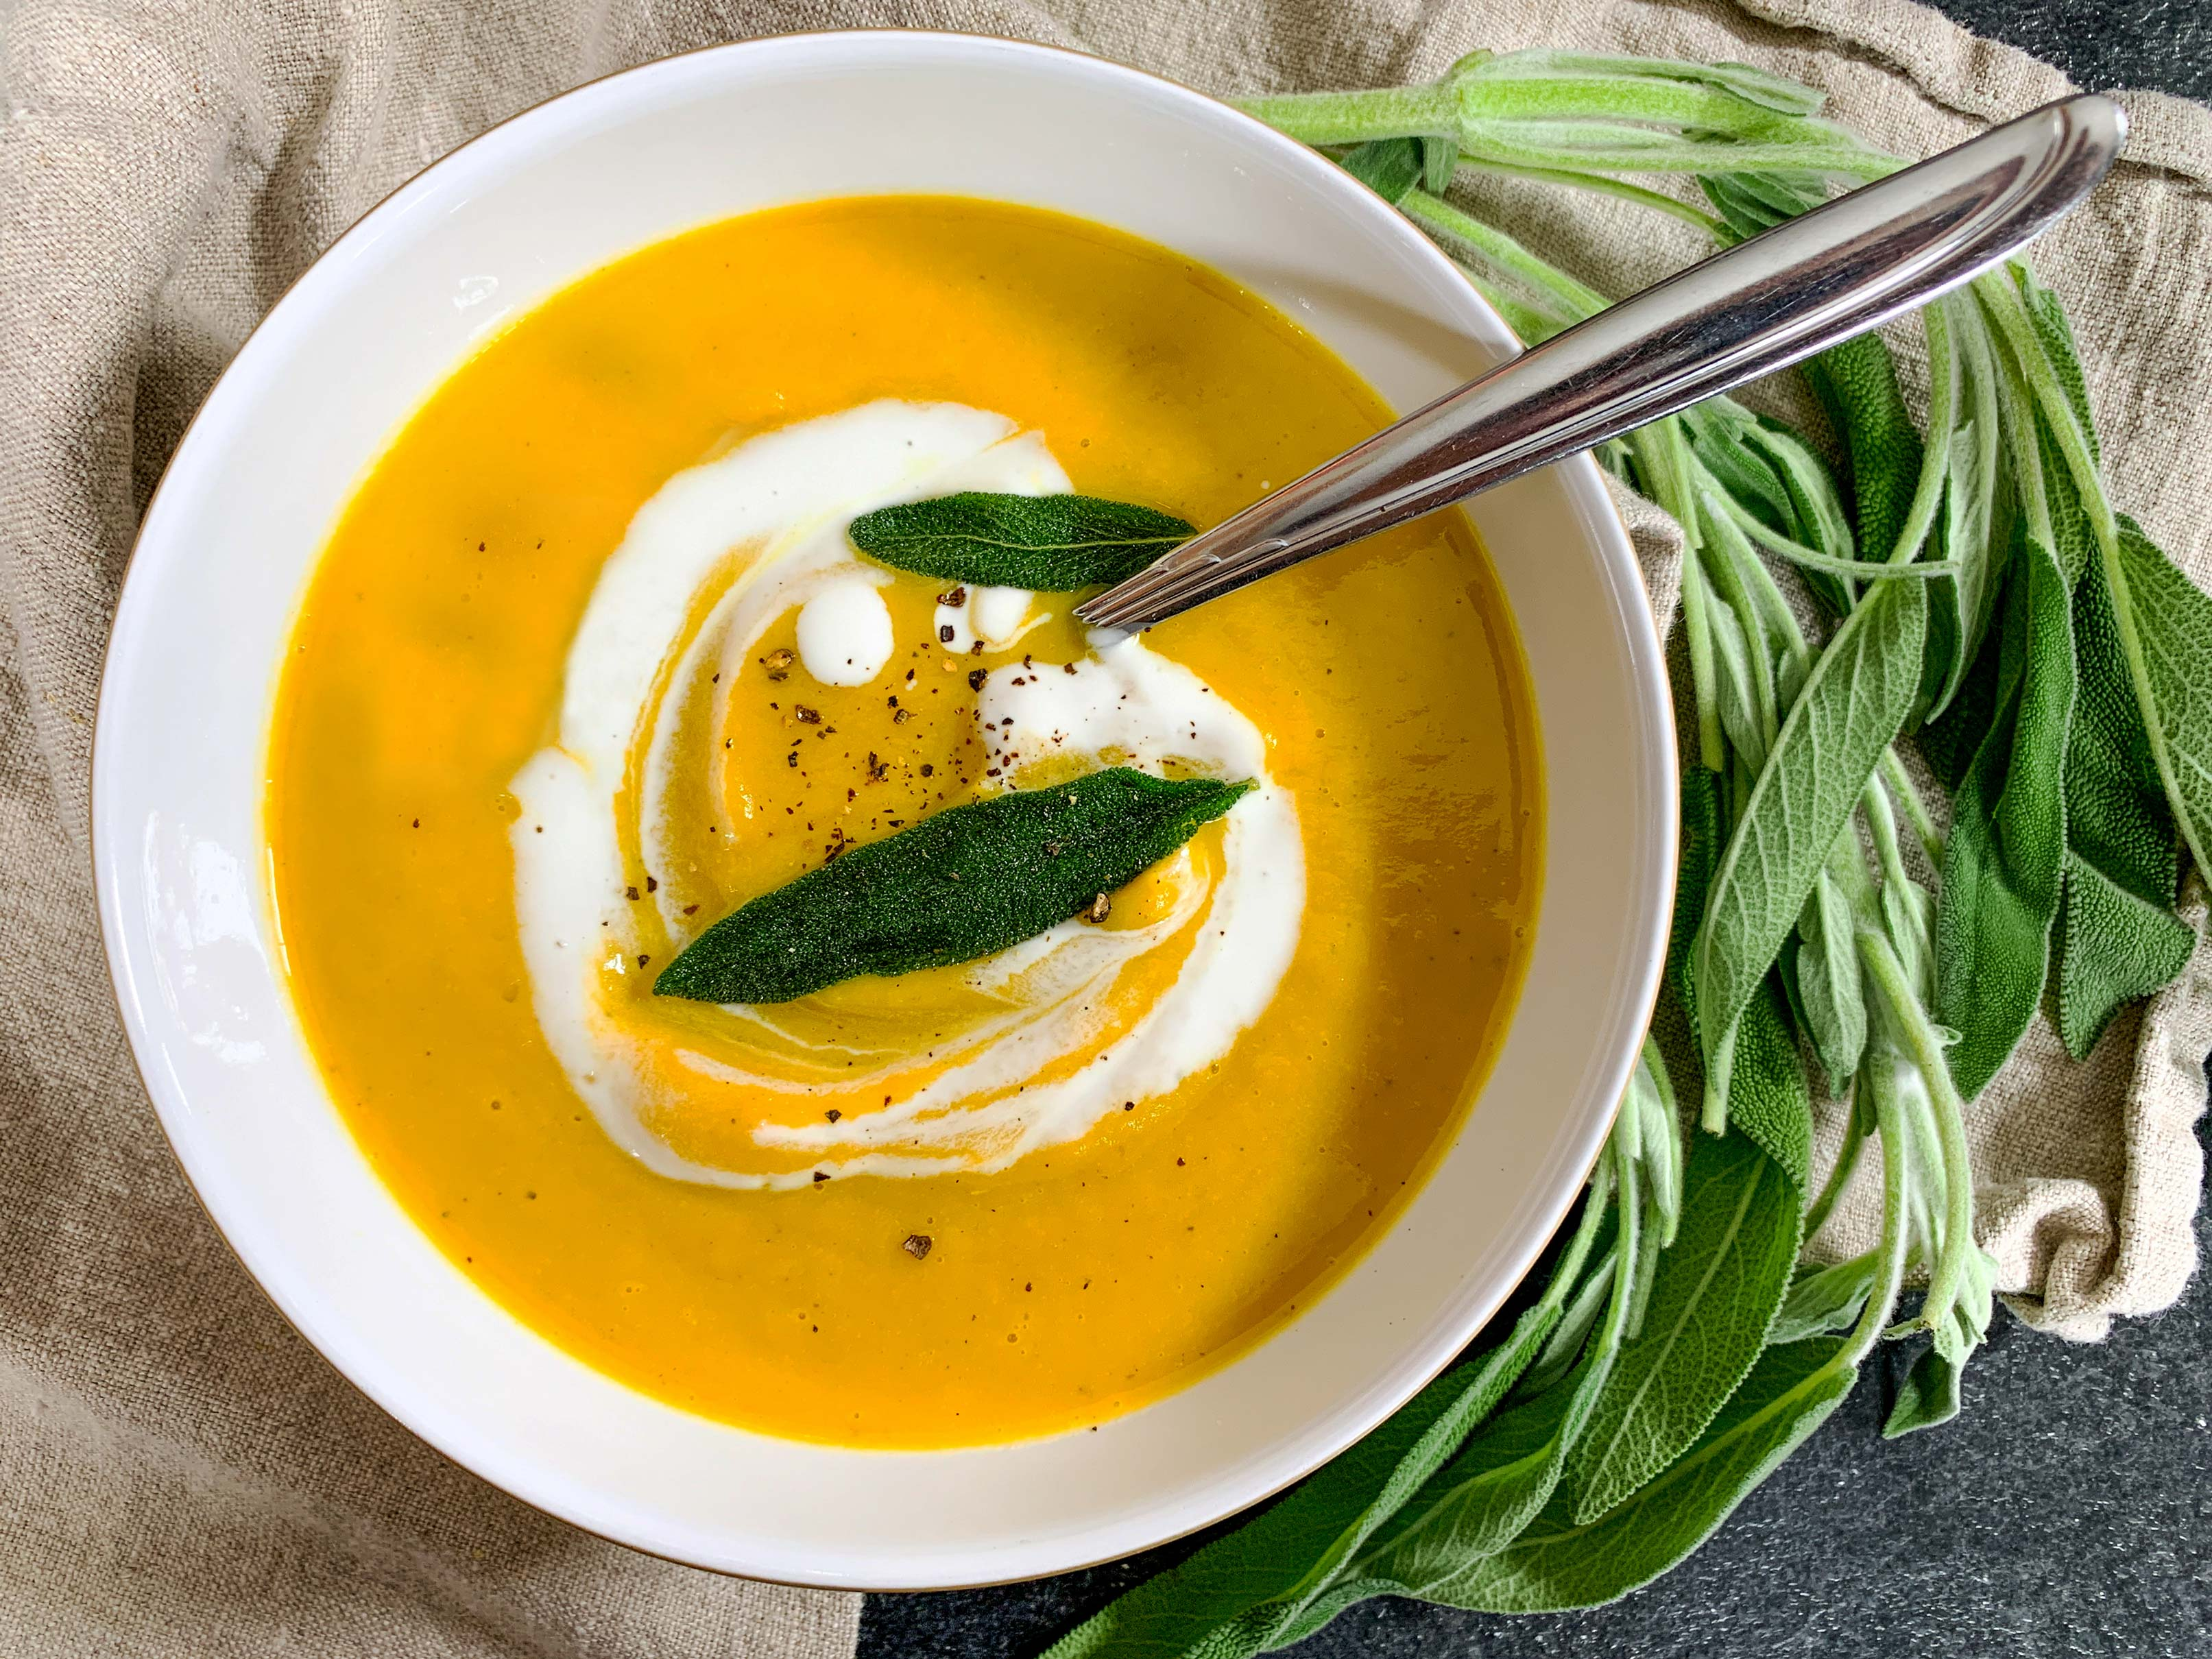 The finished butternut squash soup in a bowl